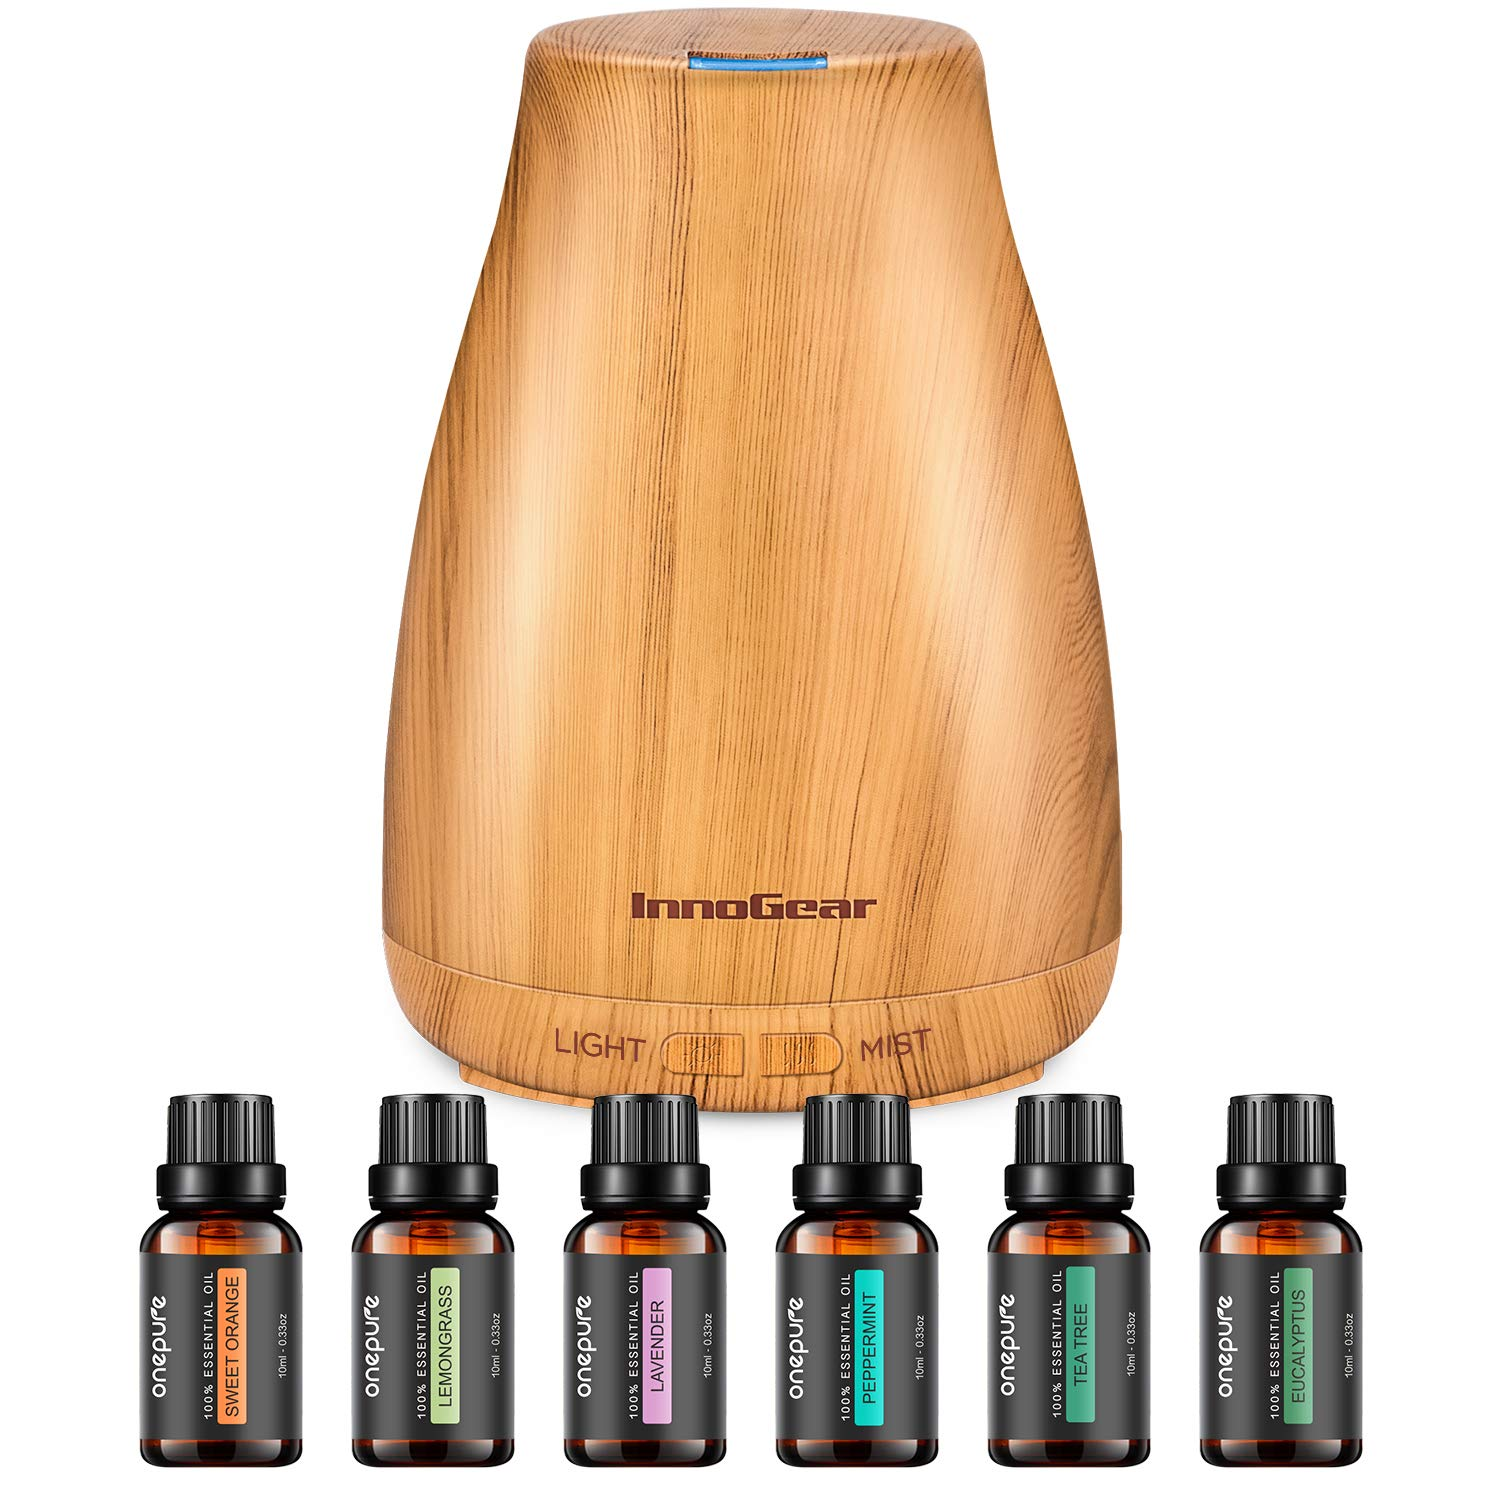 InnoGear 150 ml Aromatherapy Diffuser with 6 Scents of Essential Oil